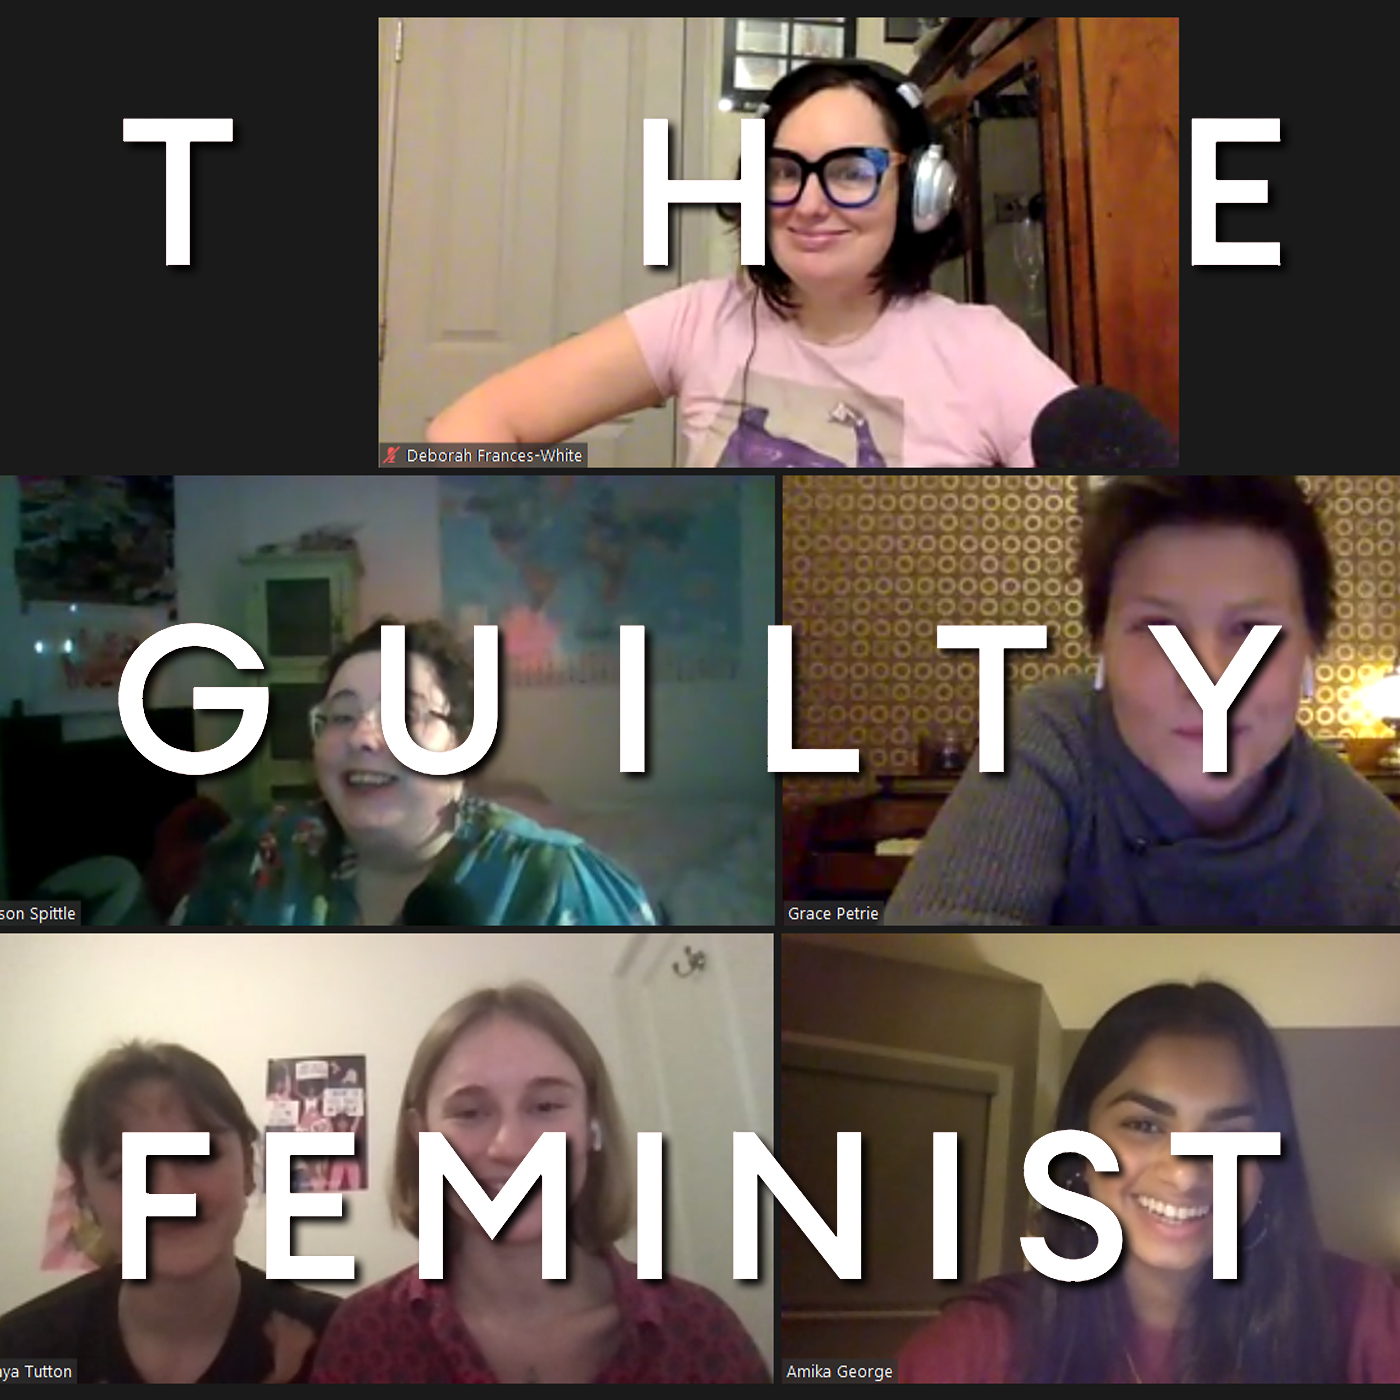 238. Making it Happen with Alison Spittle, Amika George, Maya and Gemma Tutton